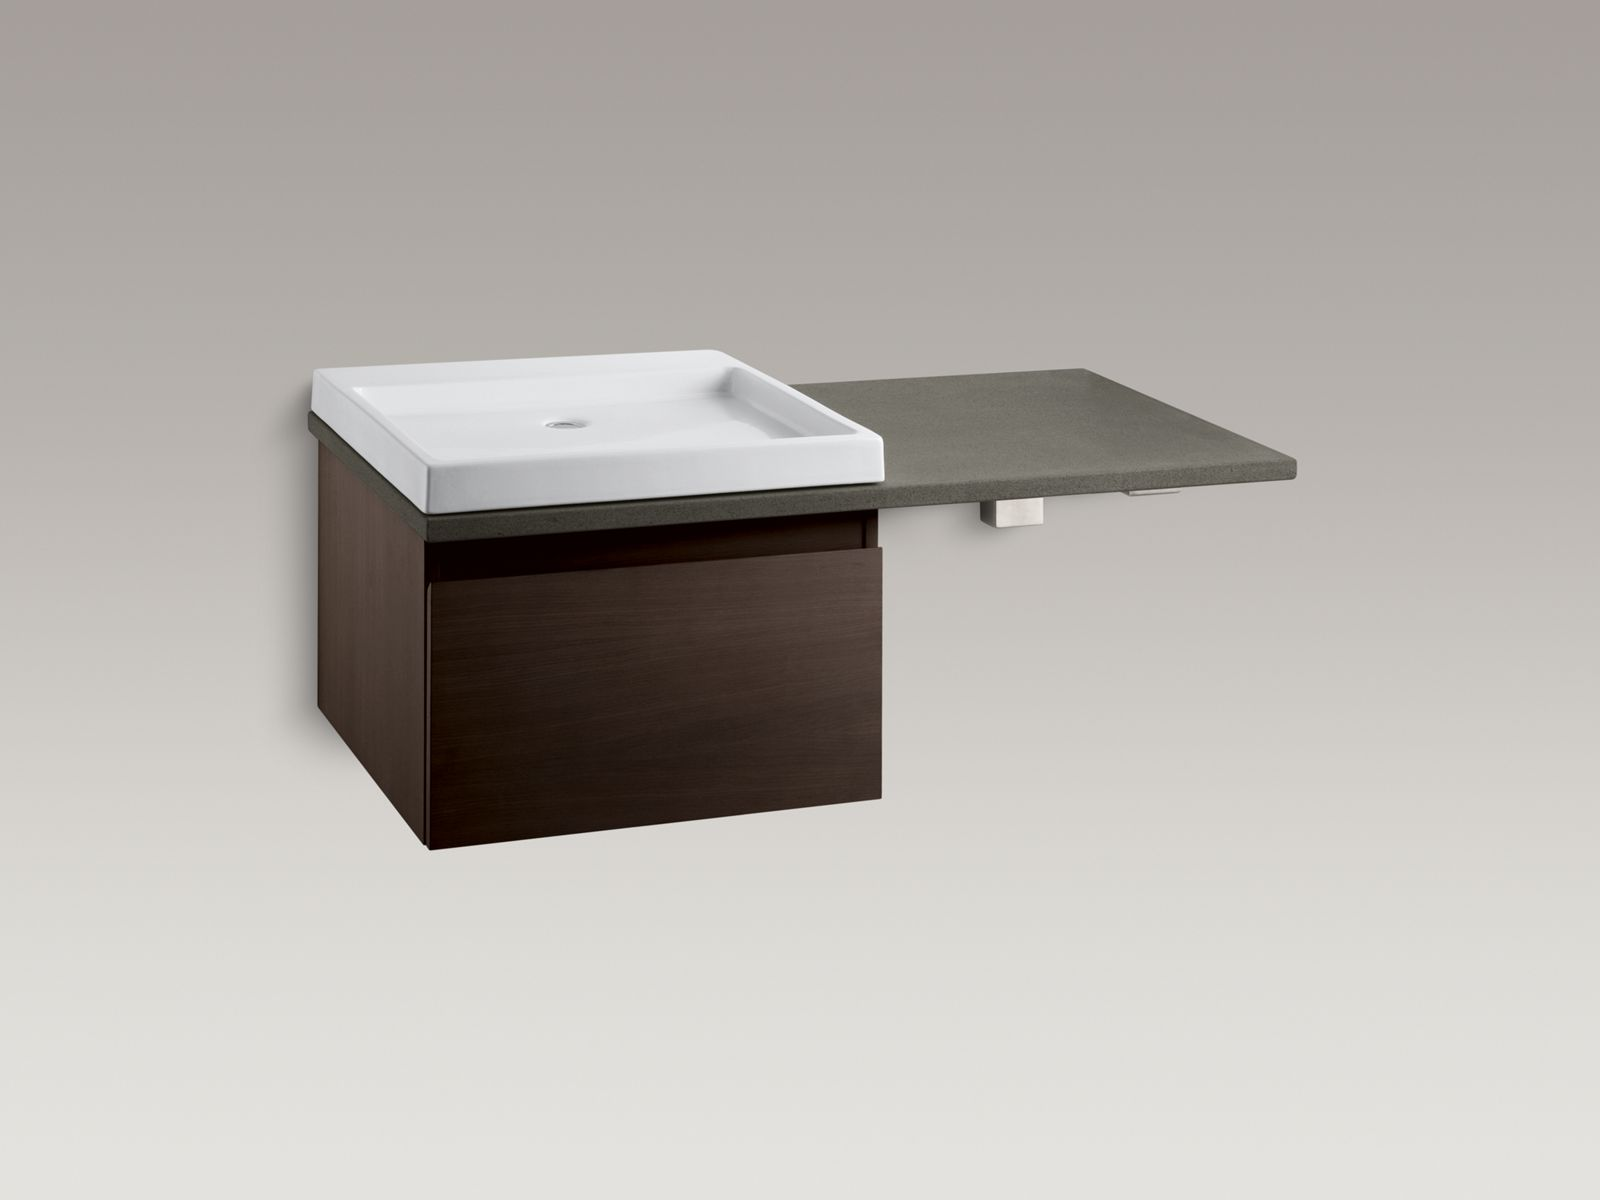 Shown with Purist®  vanity K-3081-F4, Wading Pool® lavatory K-2314-0, countertop bracket K-9667-NA and standard pop-up drain, not included.